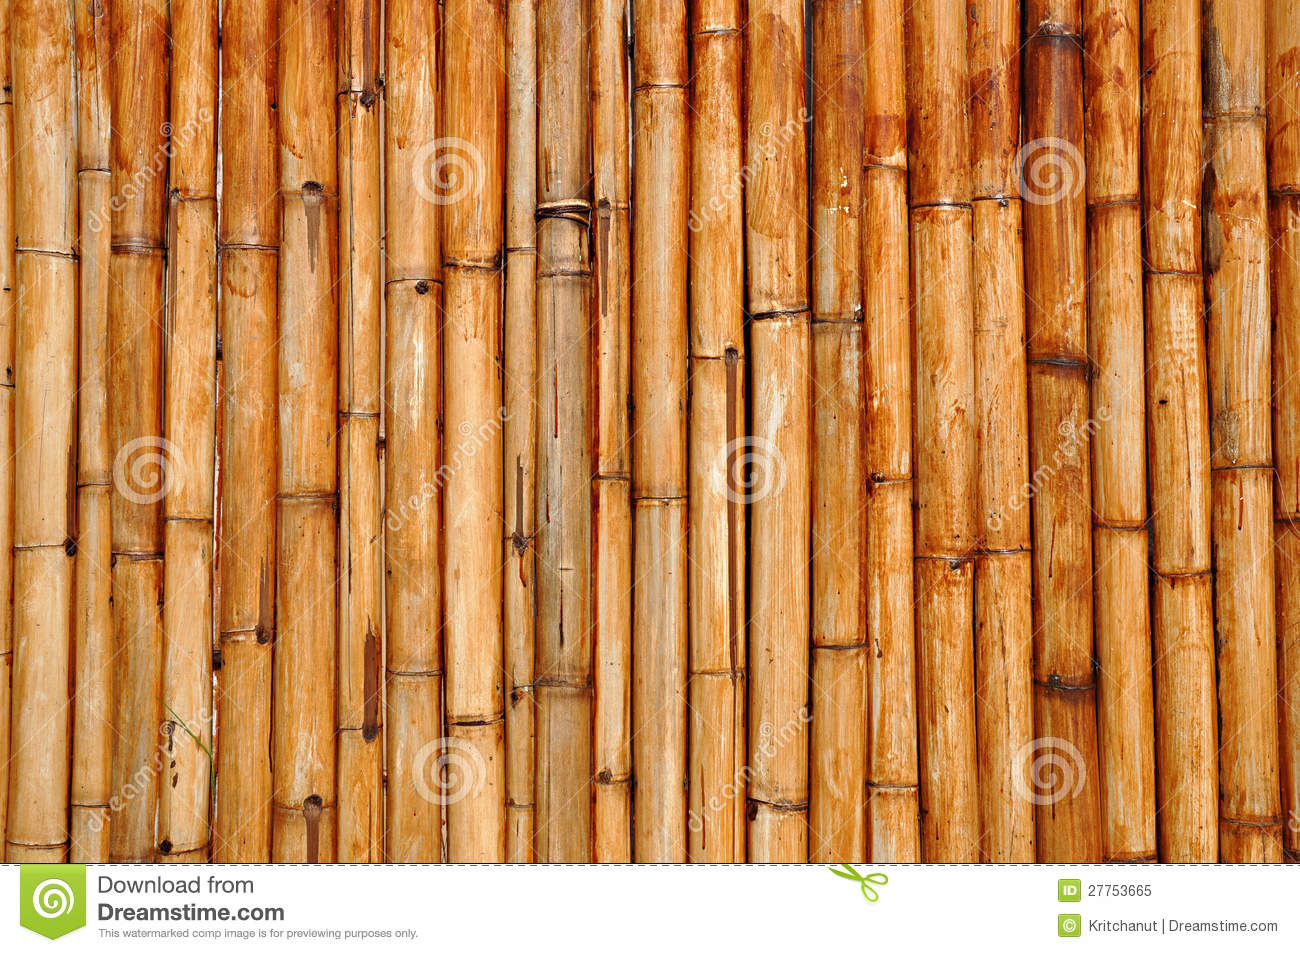 Dry bamboo sticks stock image Image of bamboo, substrate